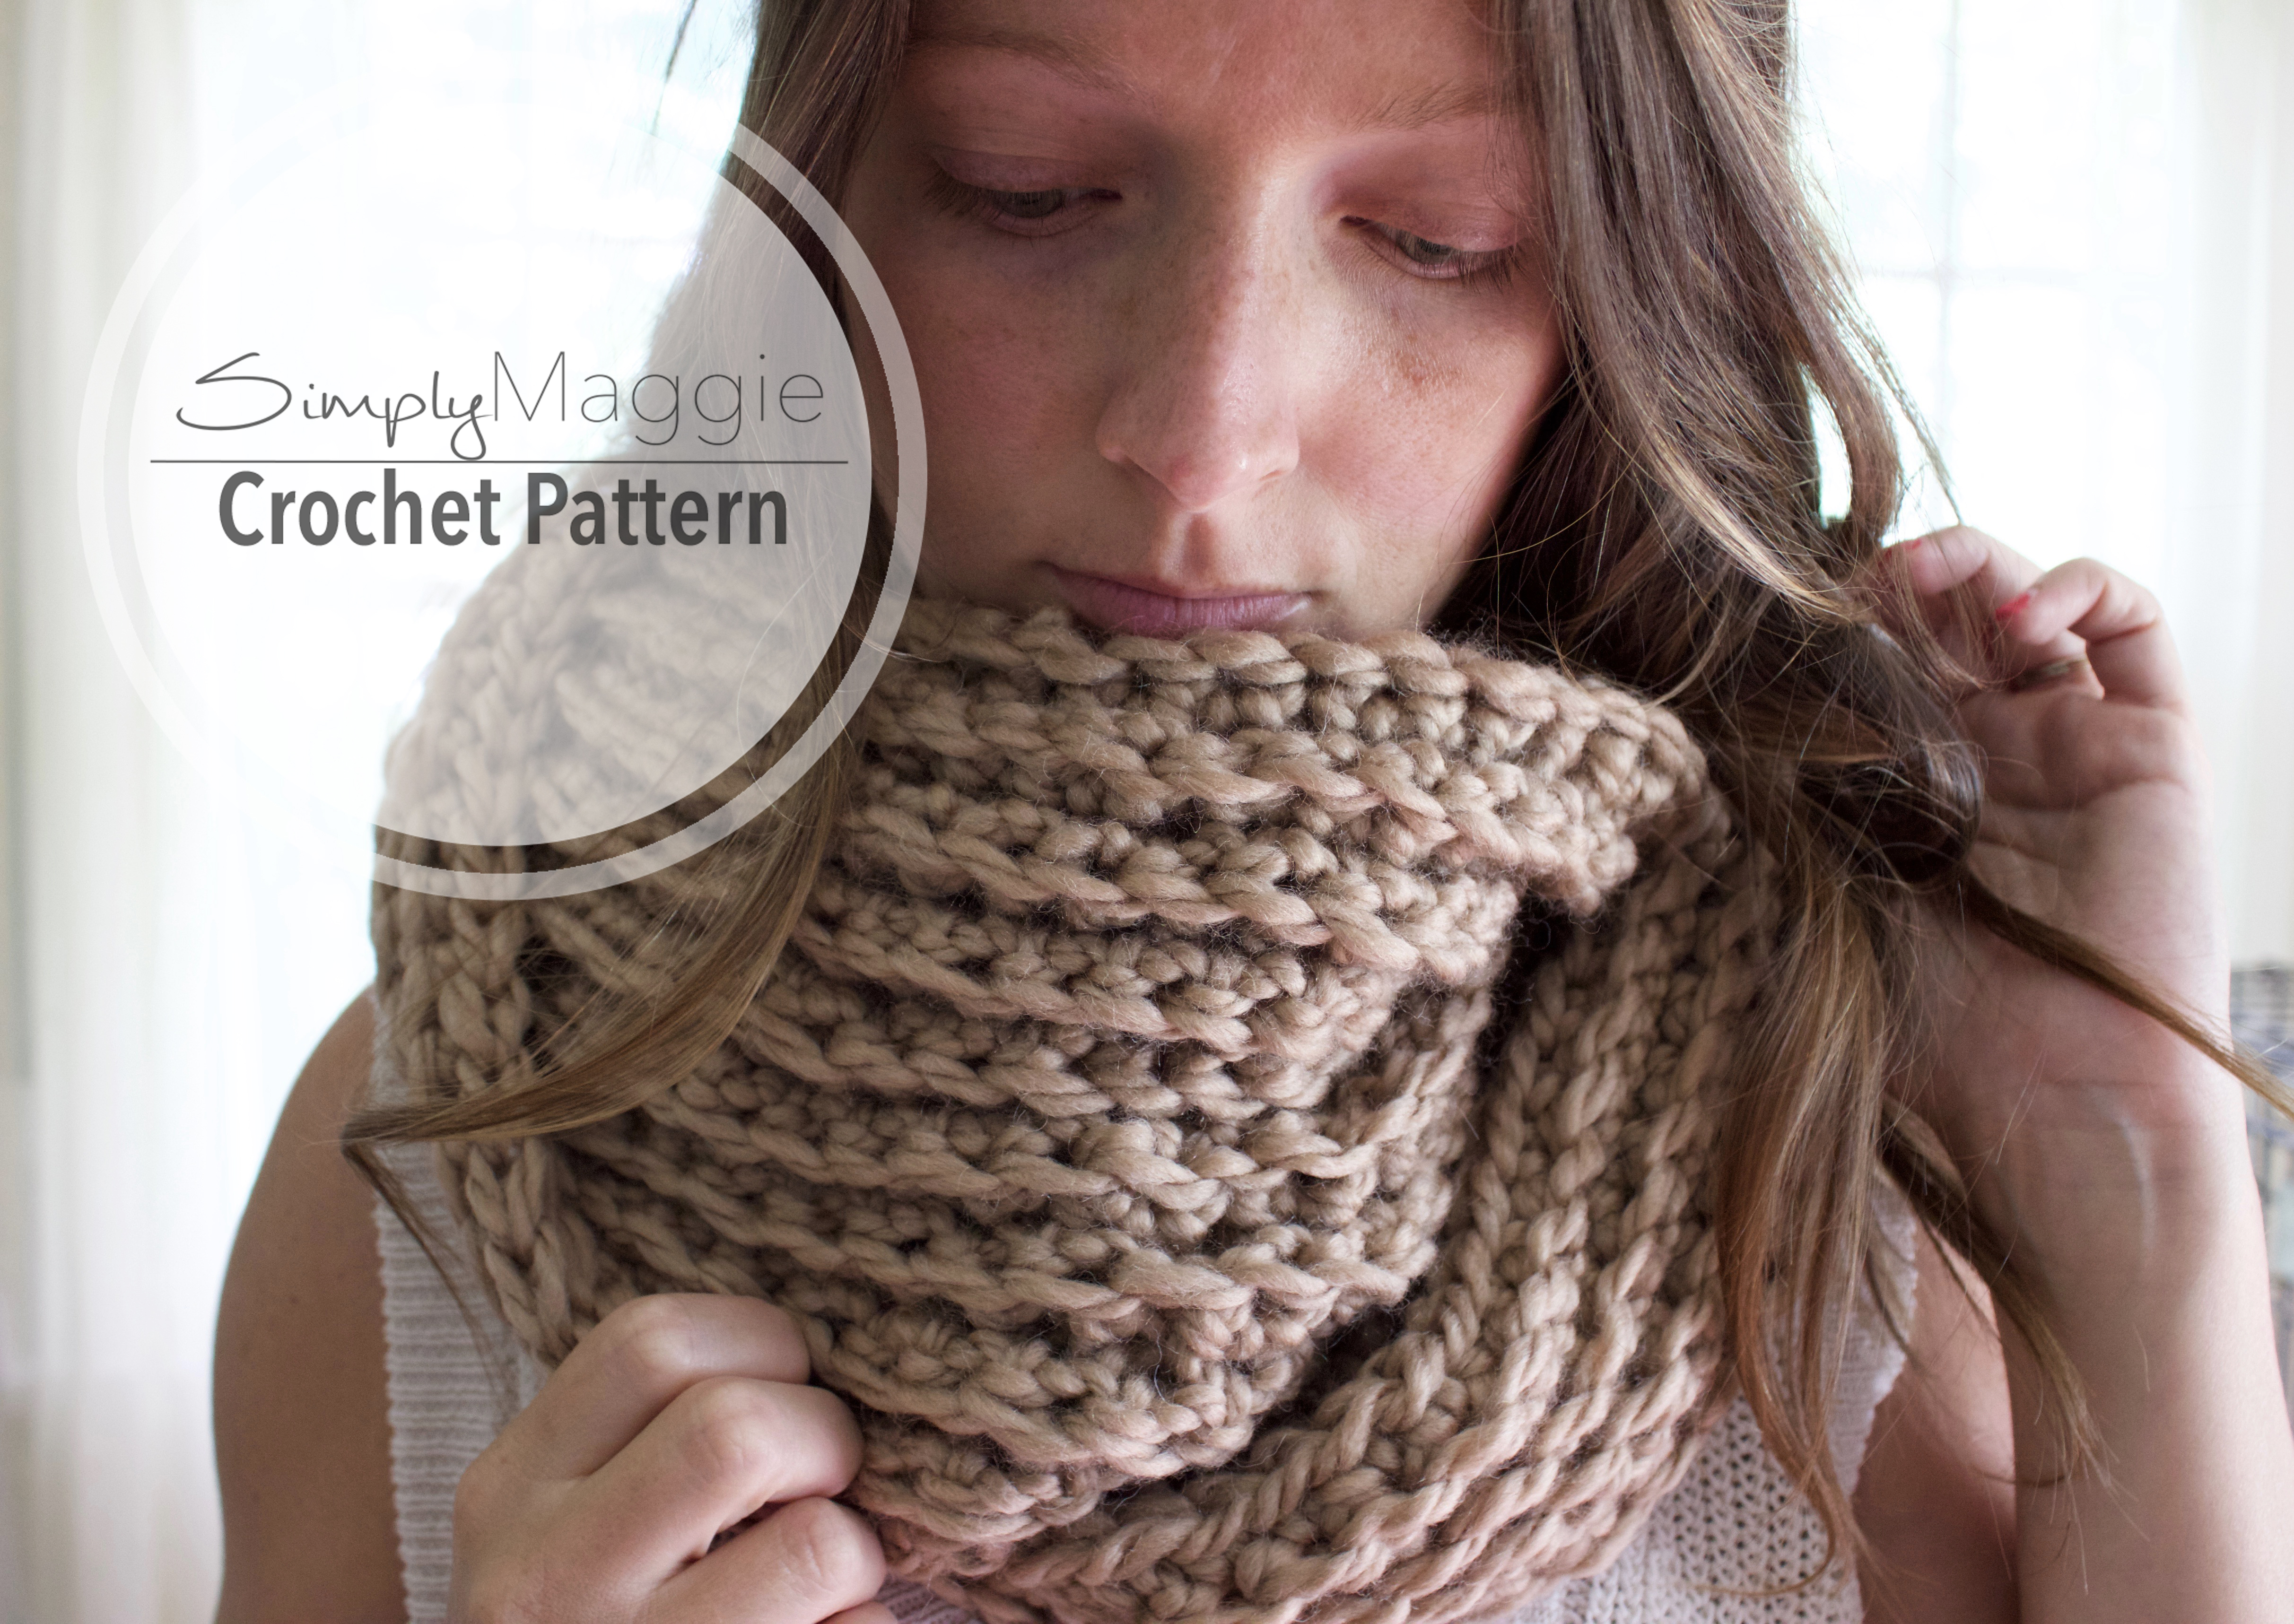 Knit and Crochet | SimplyMaggie.com - Part 2